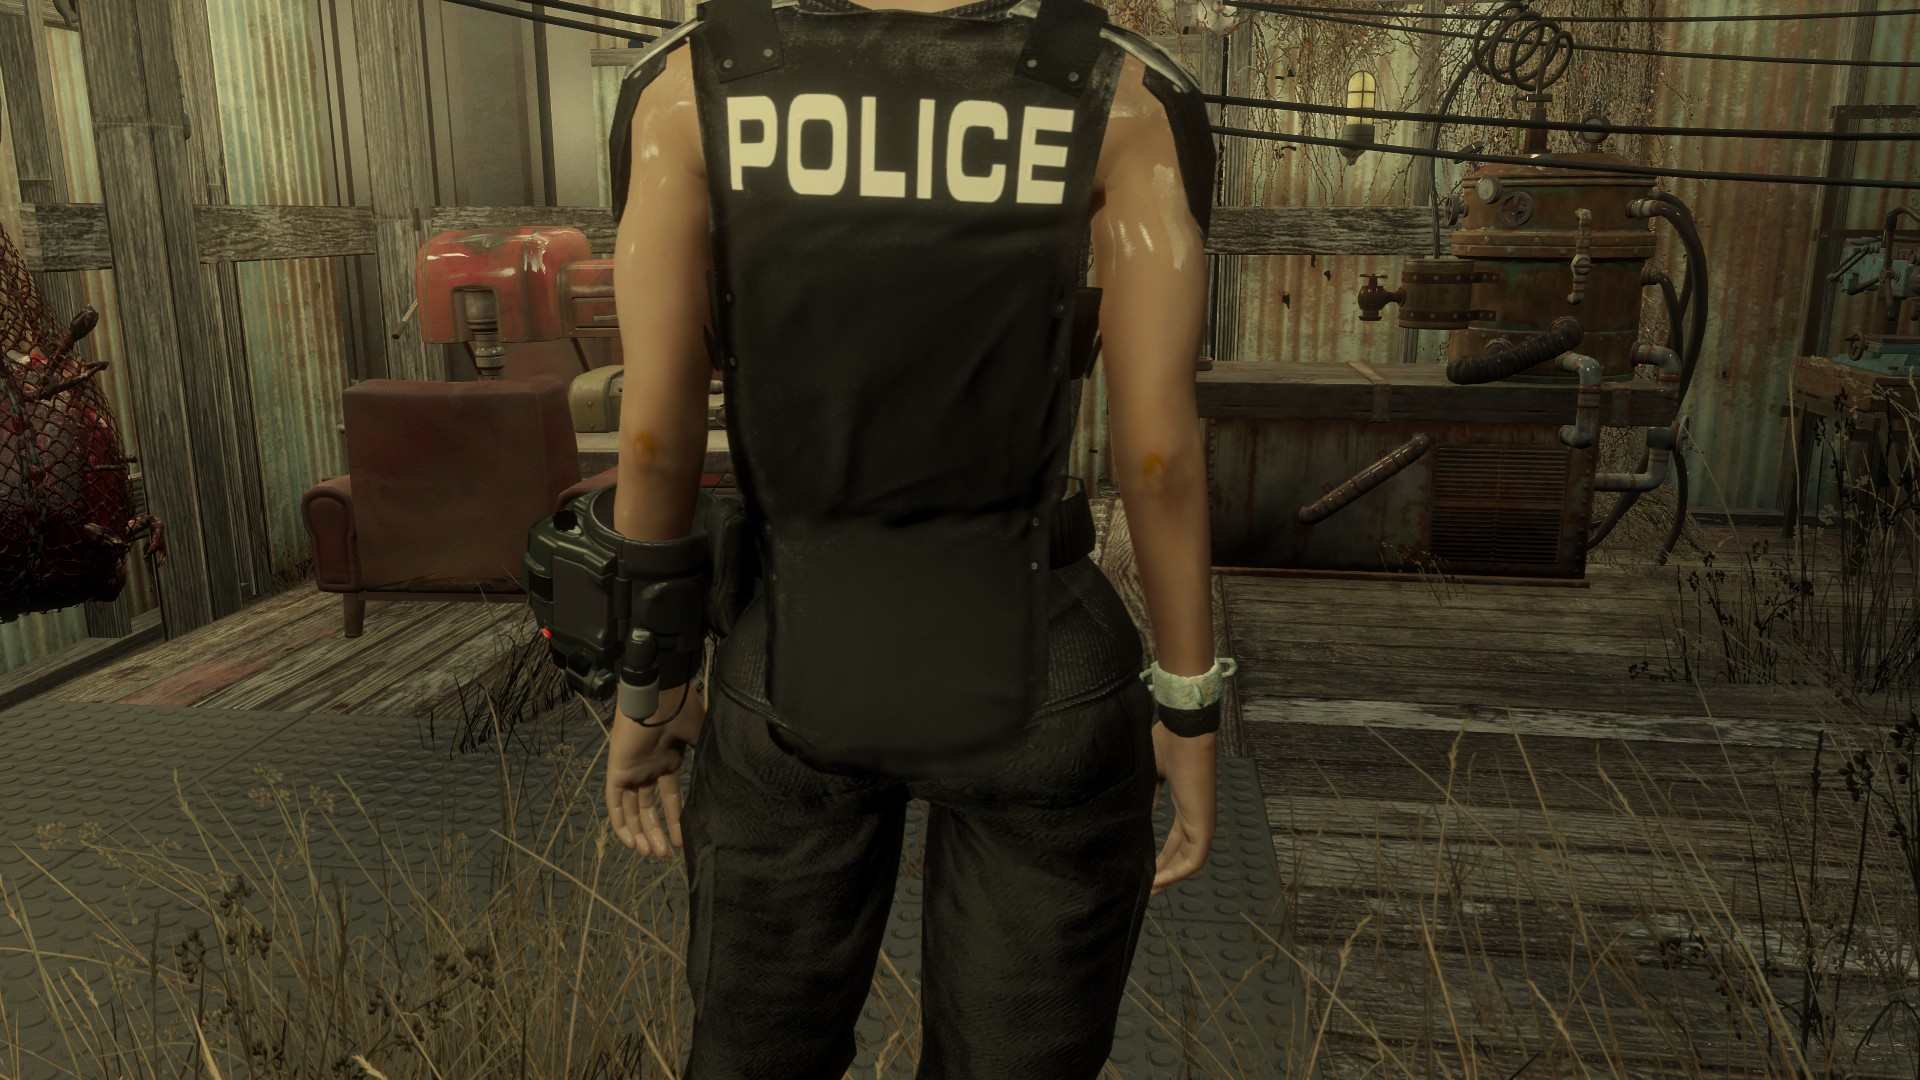 Riot vest fallout 4 mod police learn to read candlestick charts